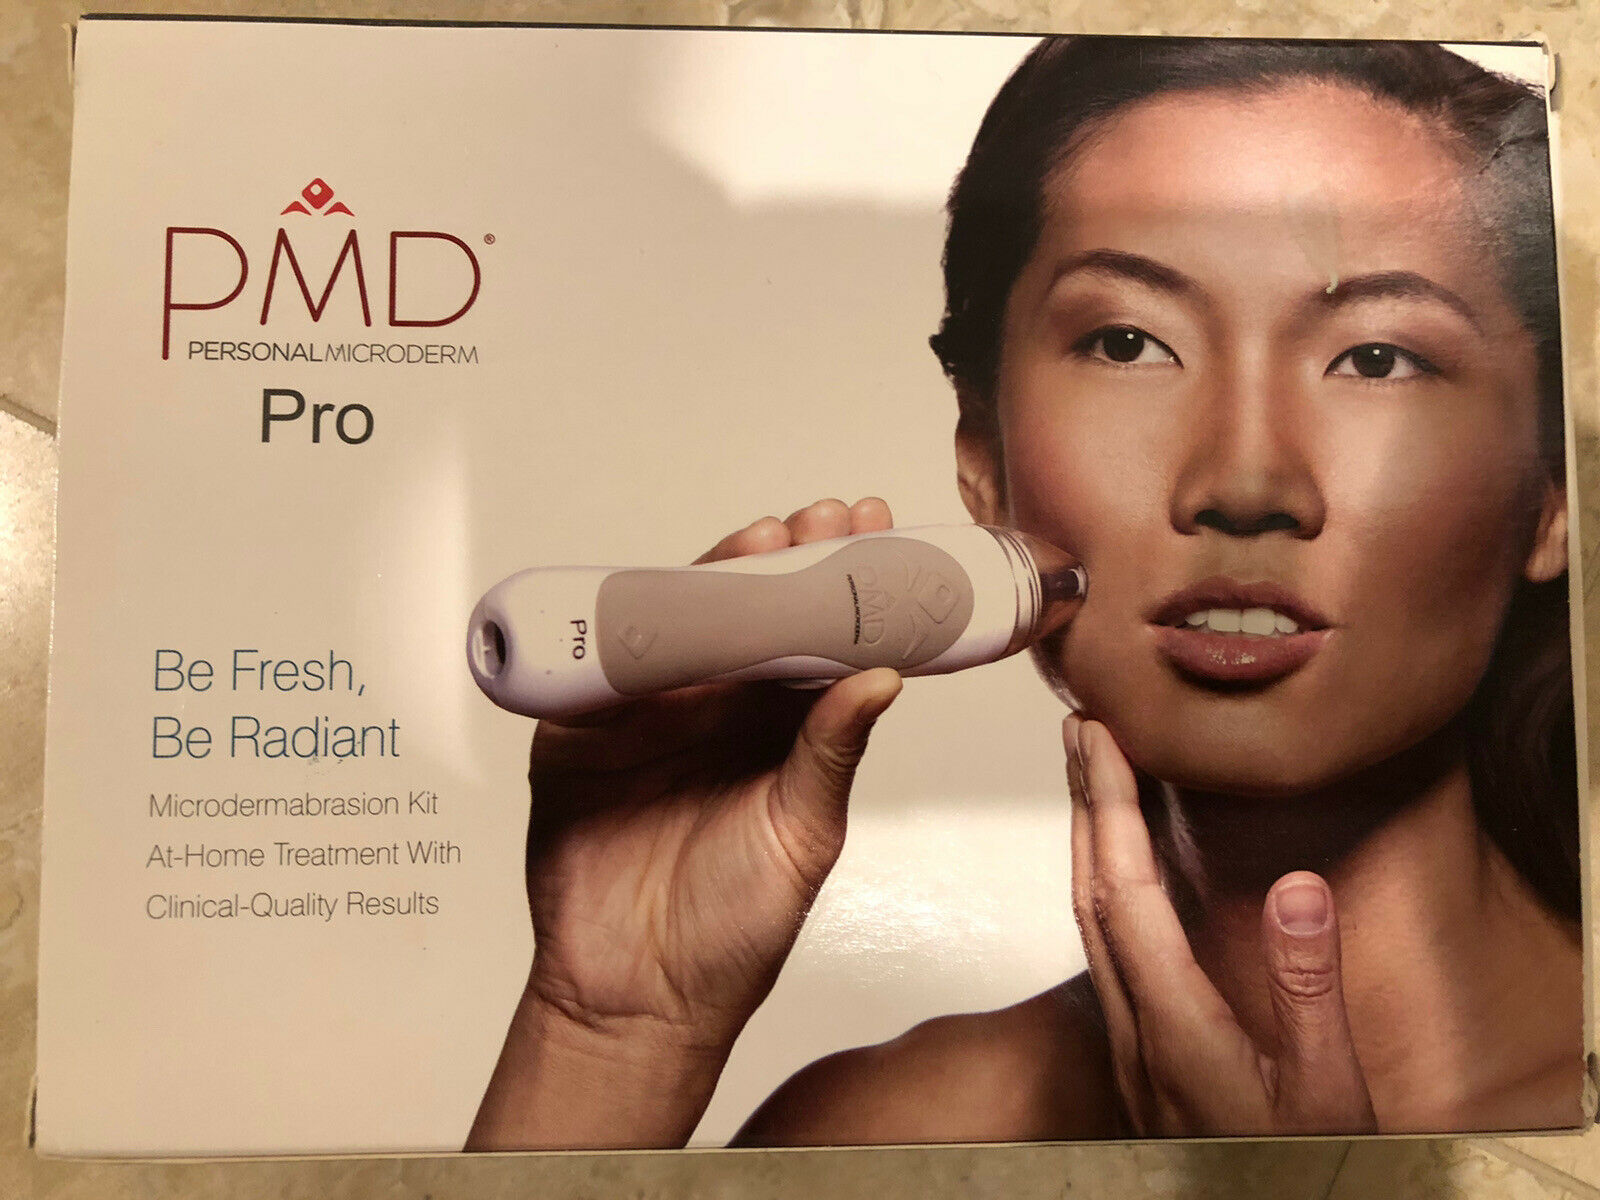 PMD Personal Microderm Pro Complete Skin Care System With 12 Tips 2